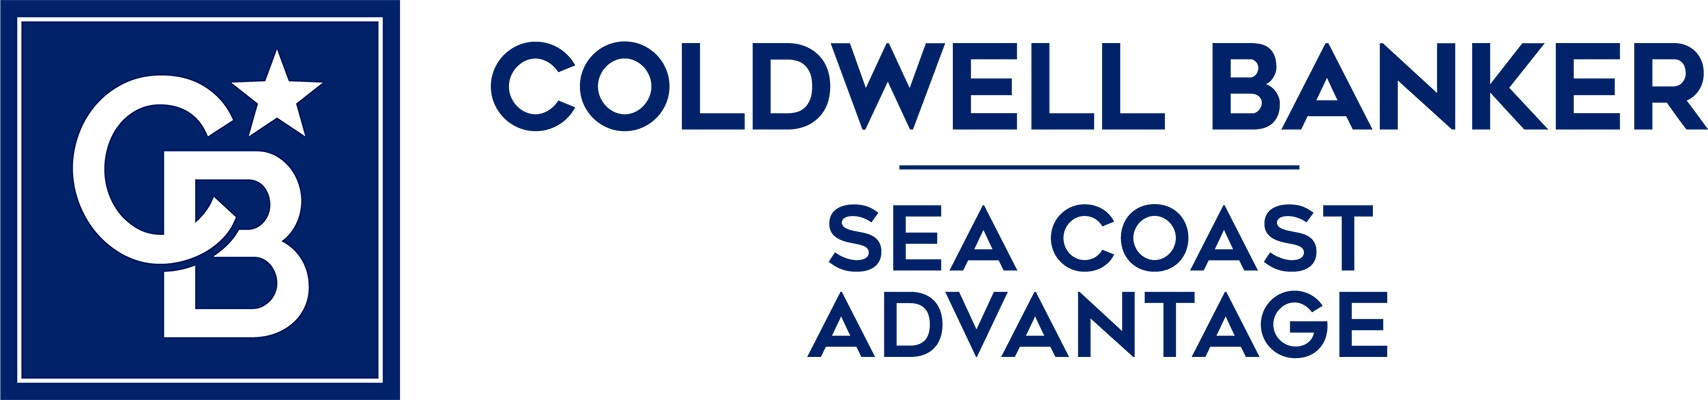 Heather Black - Coldwell Banker Sea Coast Advantage Realty